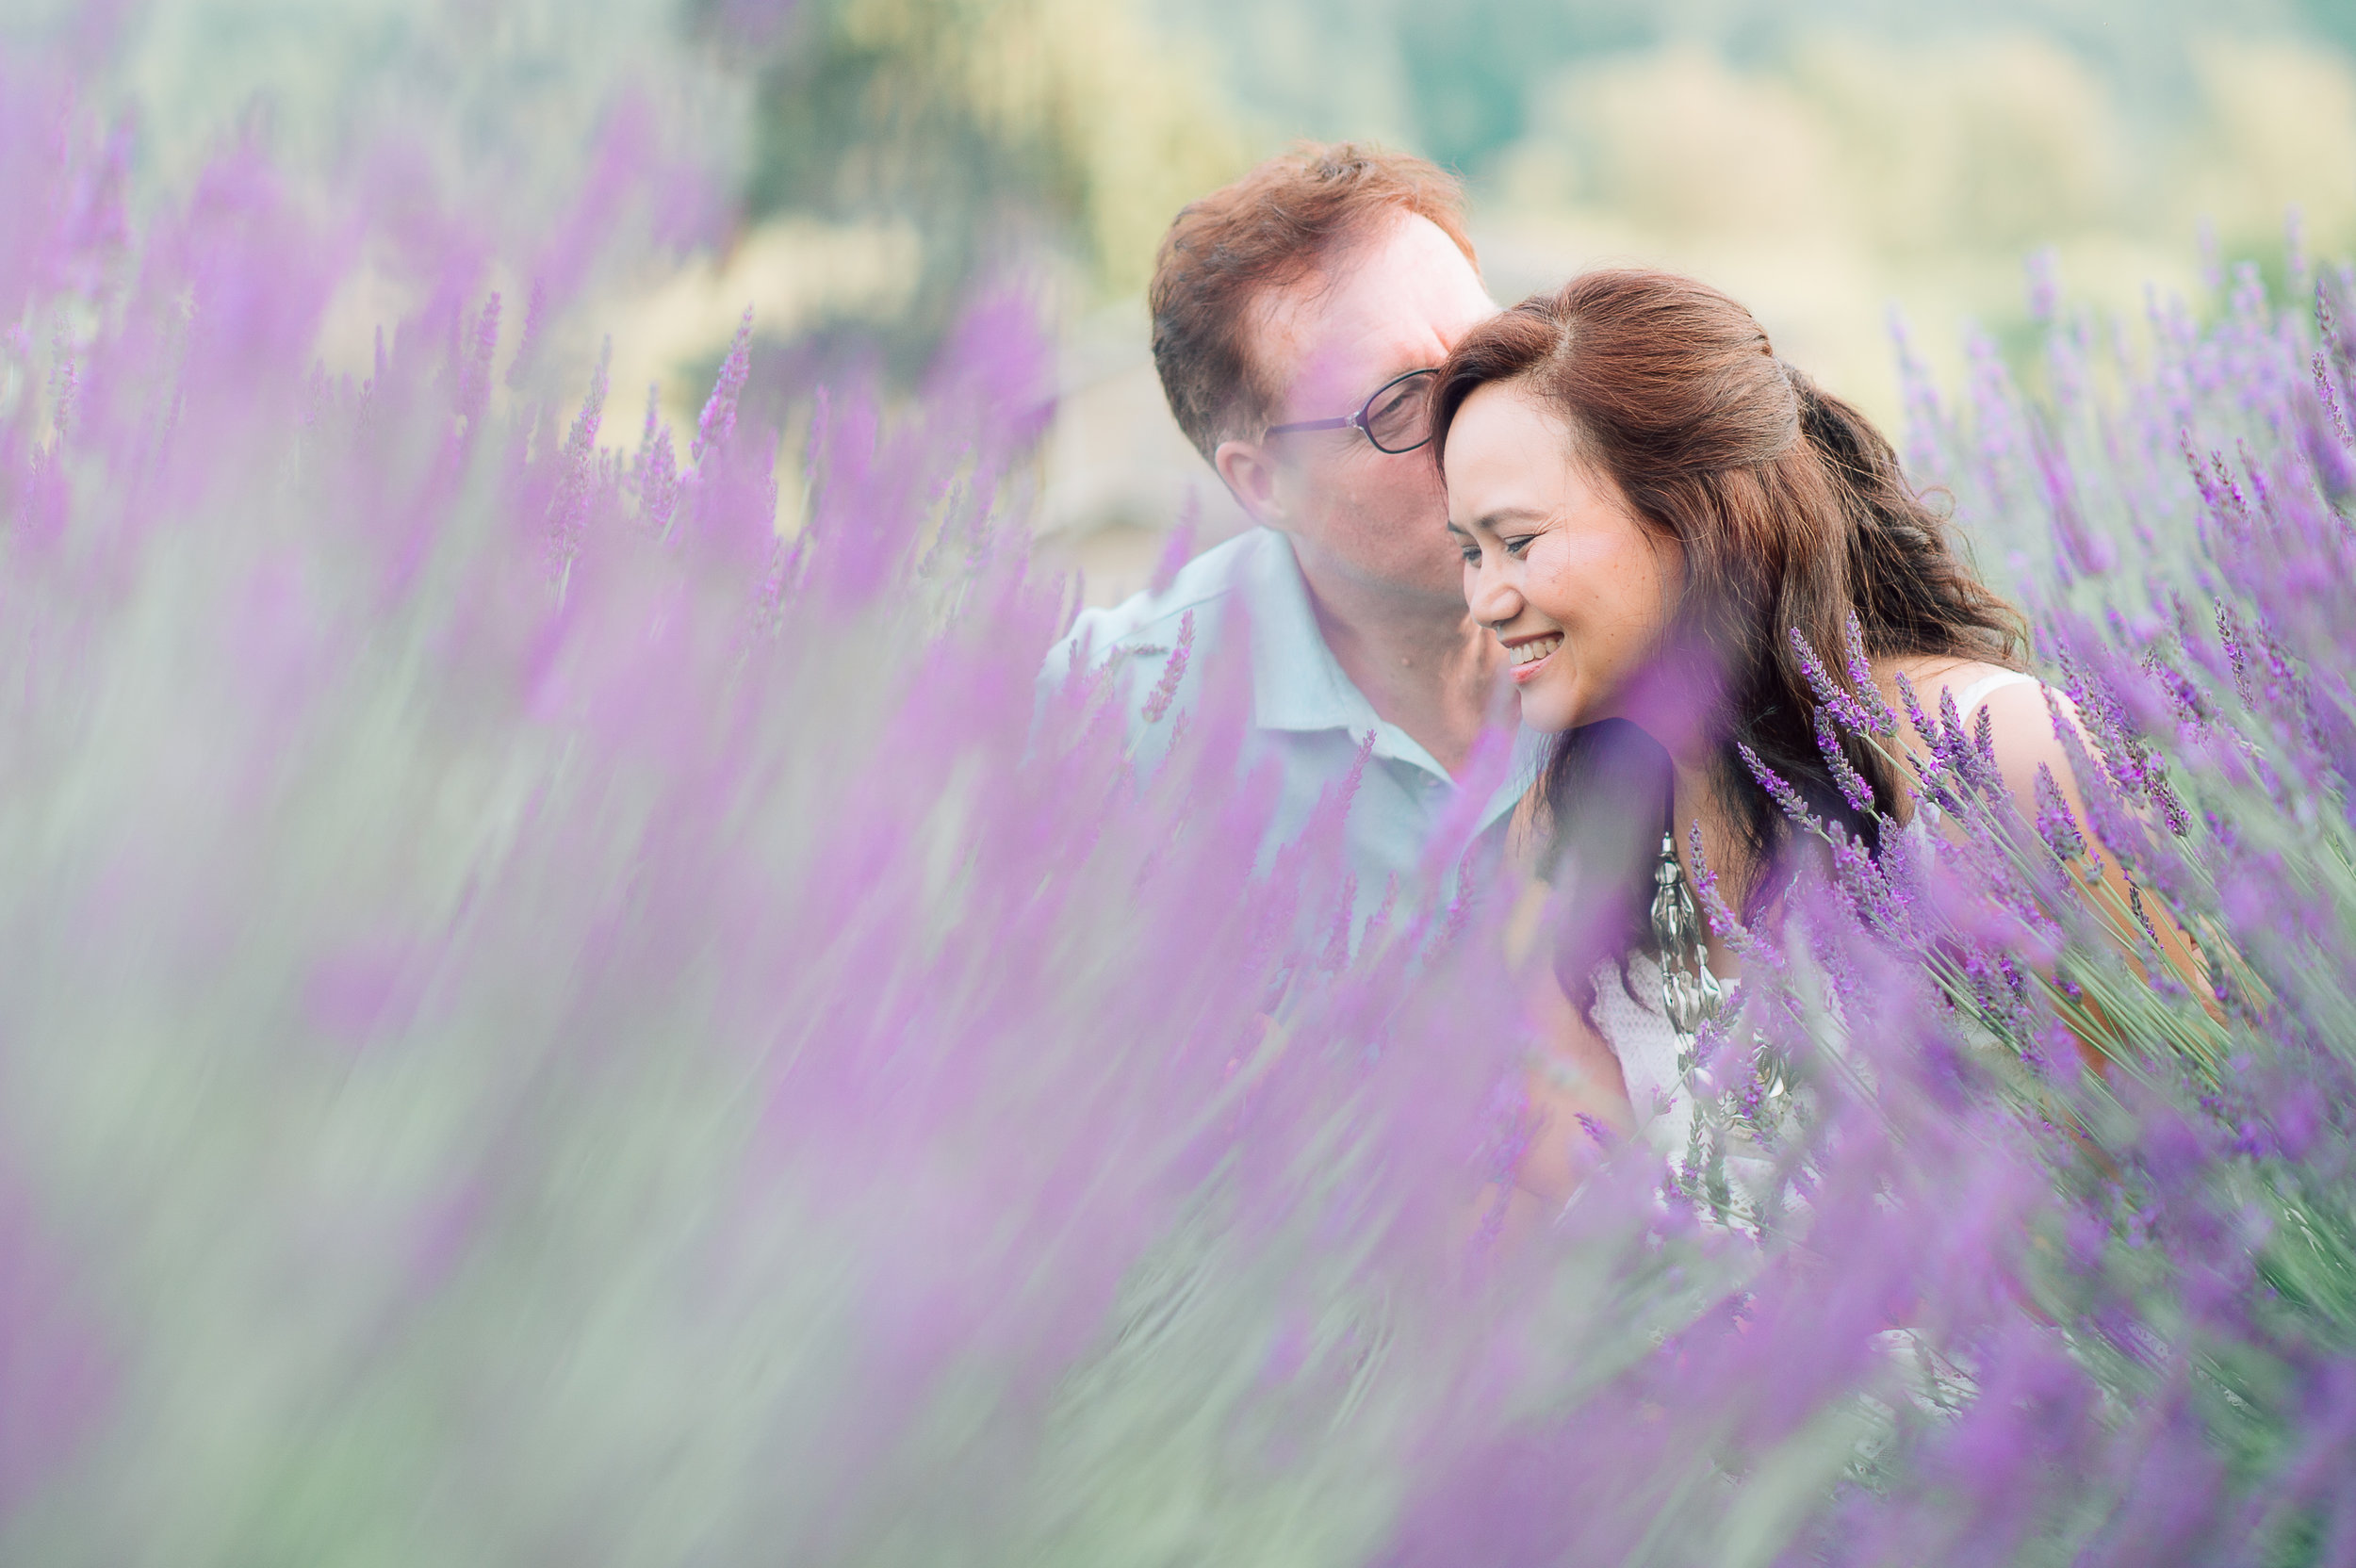 engagement_lavenderfield_youseephotography_LidiaOtto (24).jpg